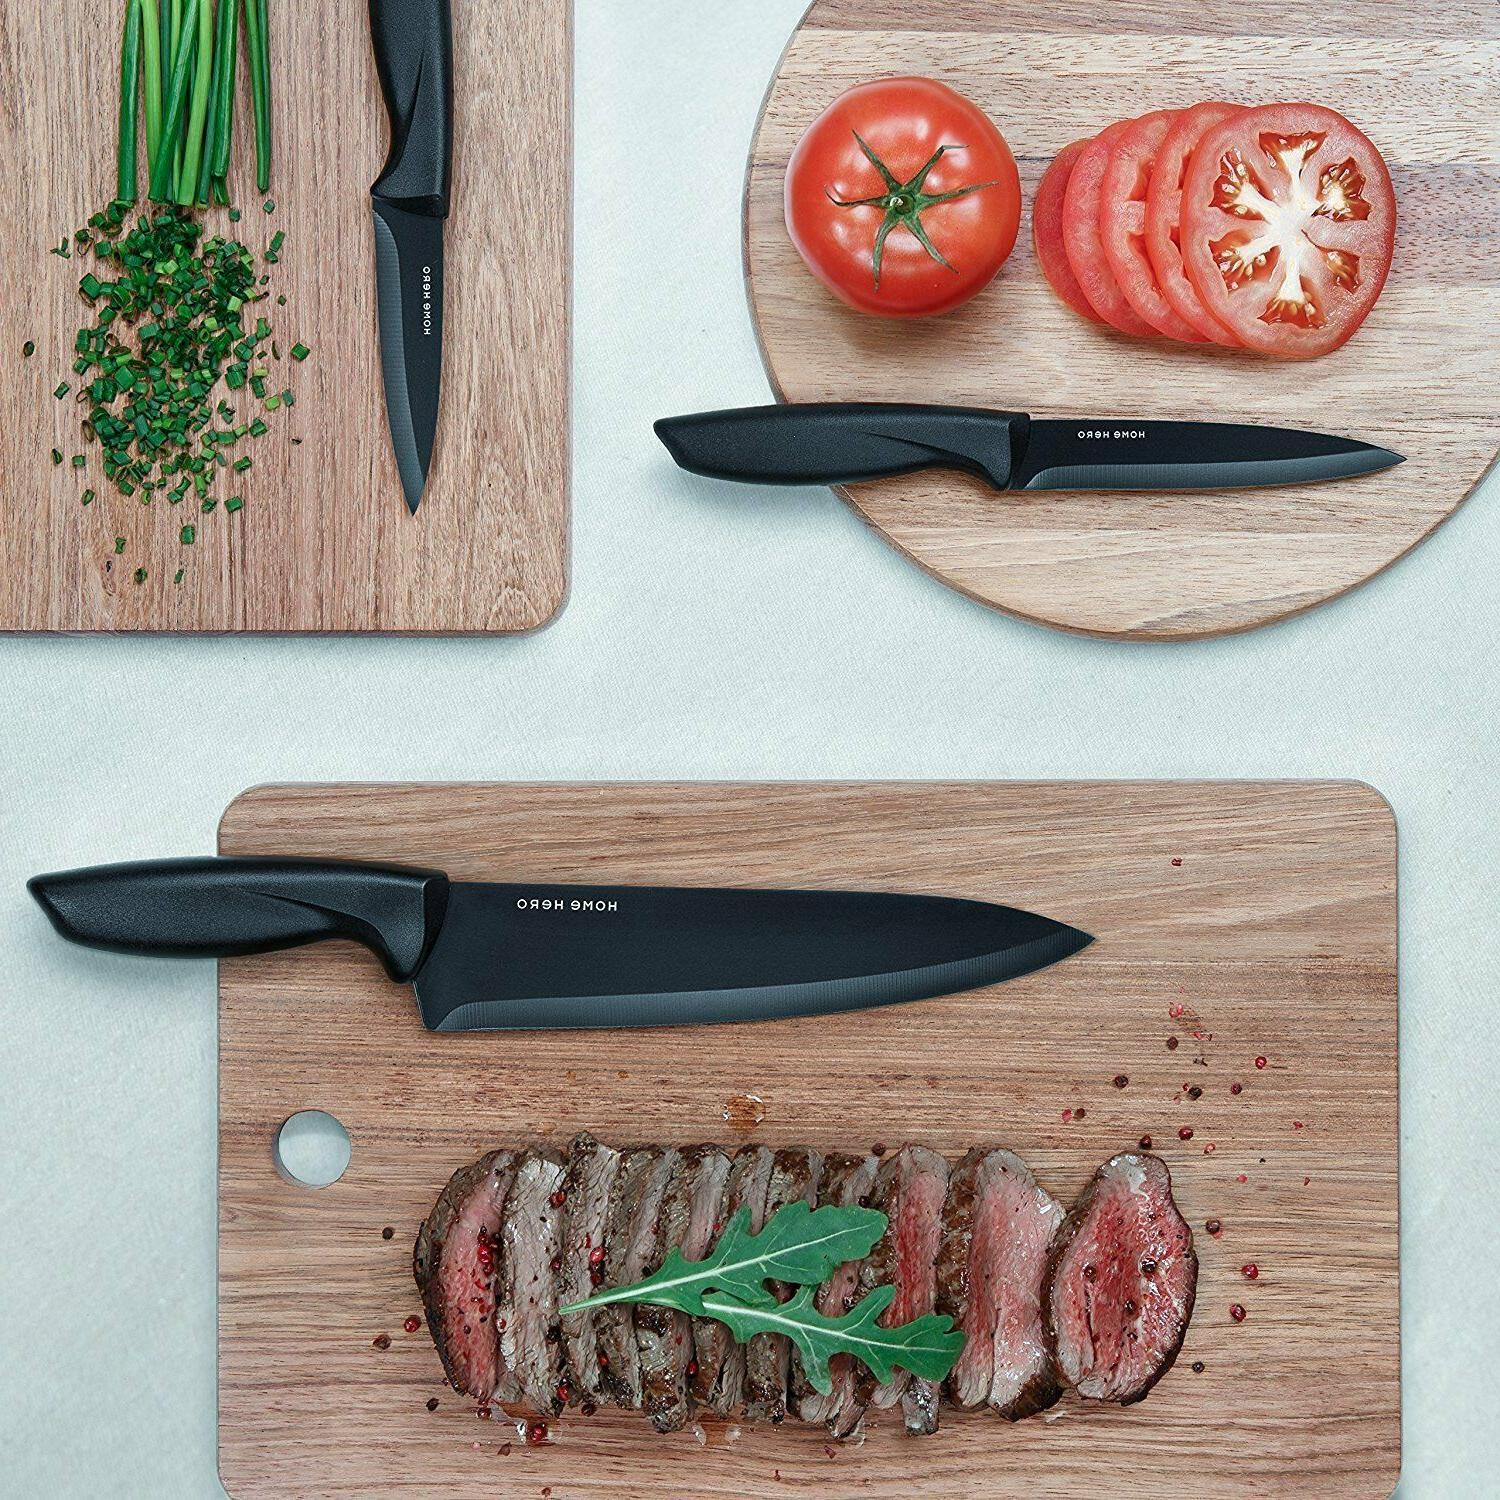 Chef Kitchen Piece Stainless Steel Cutlery Knives